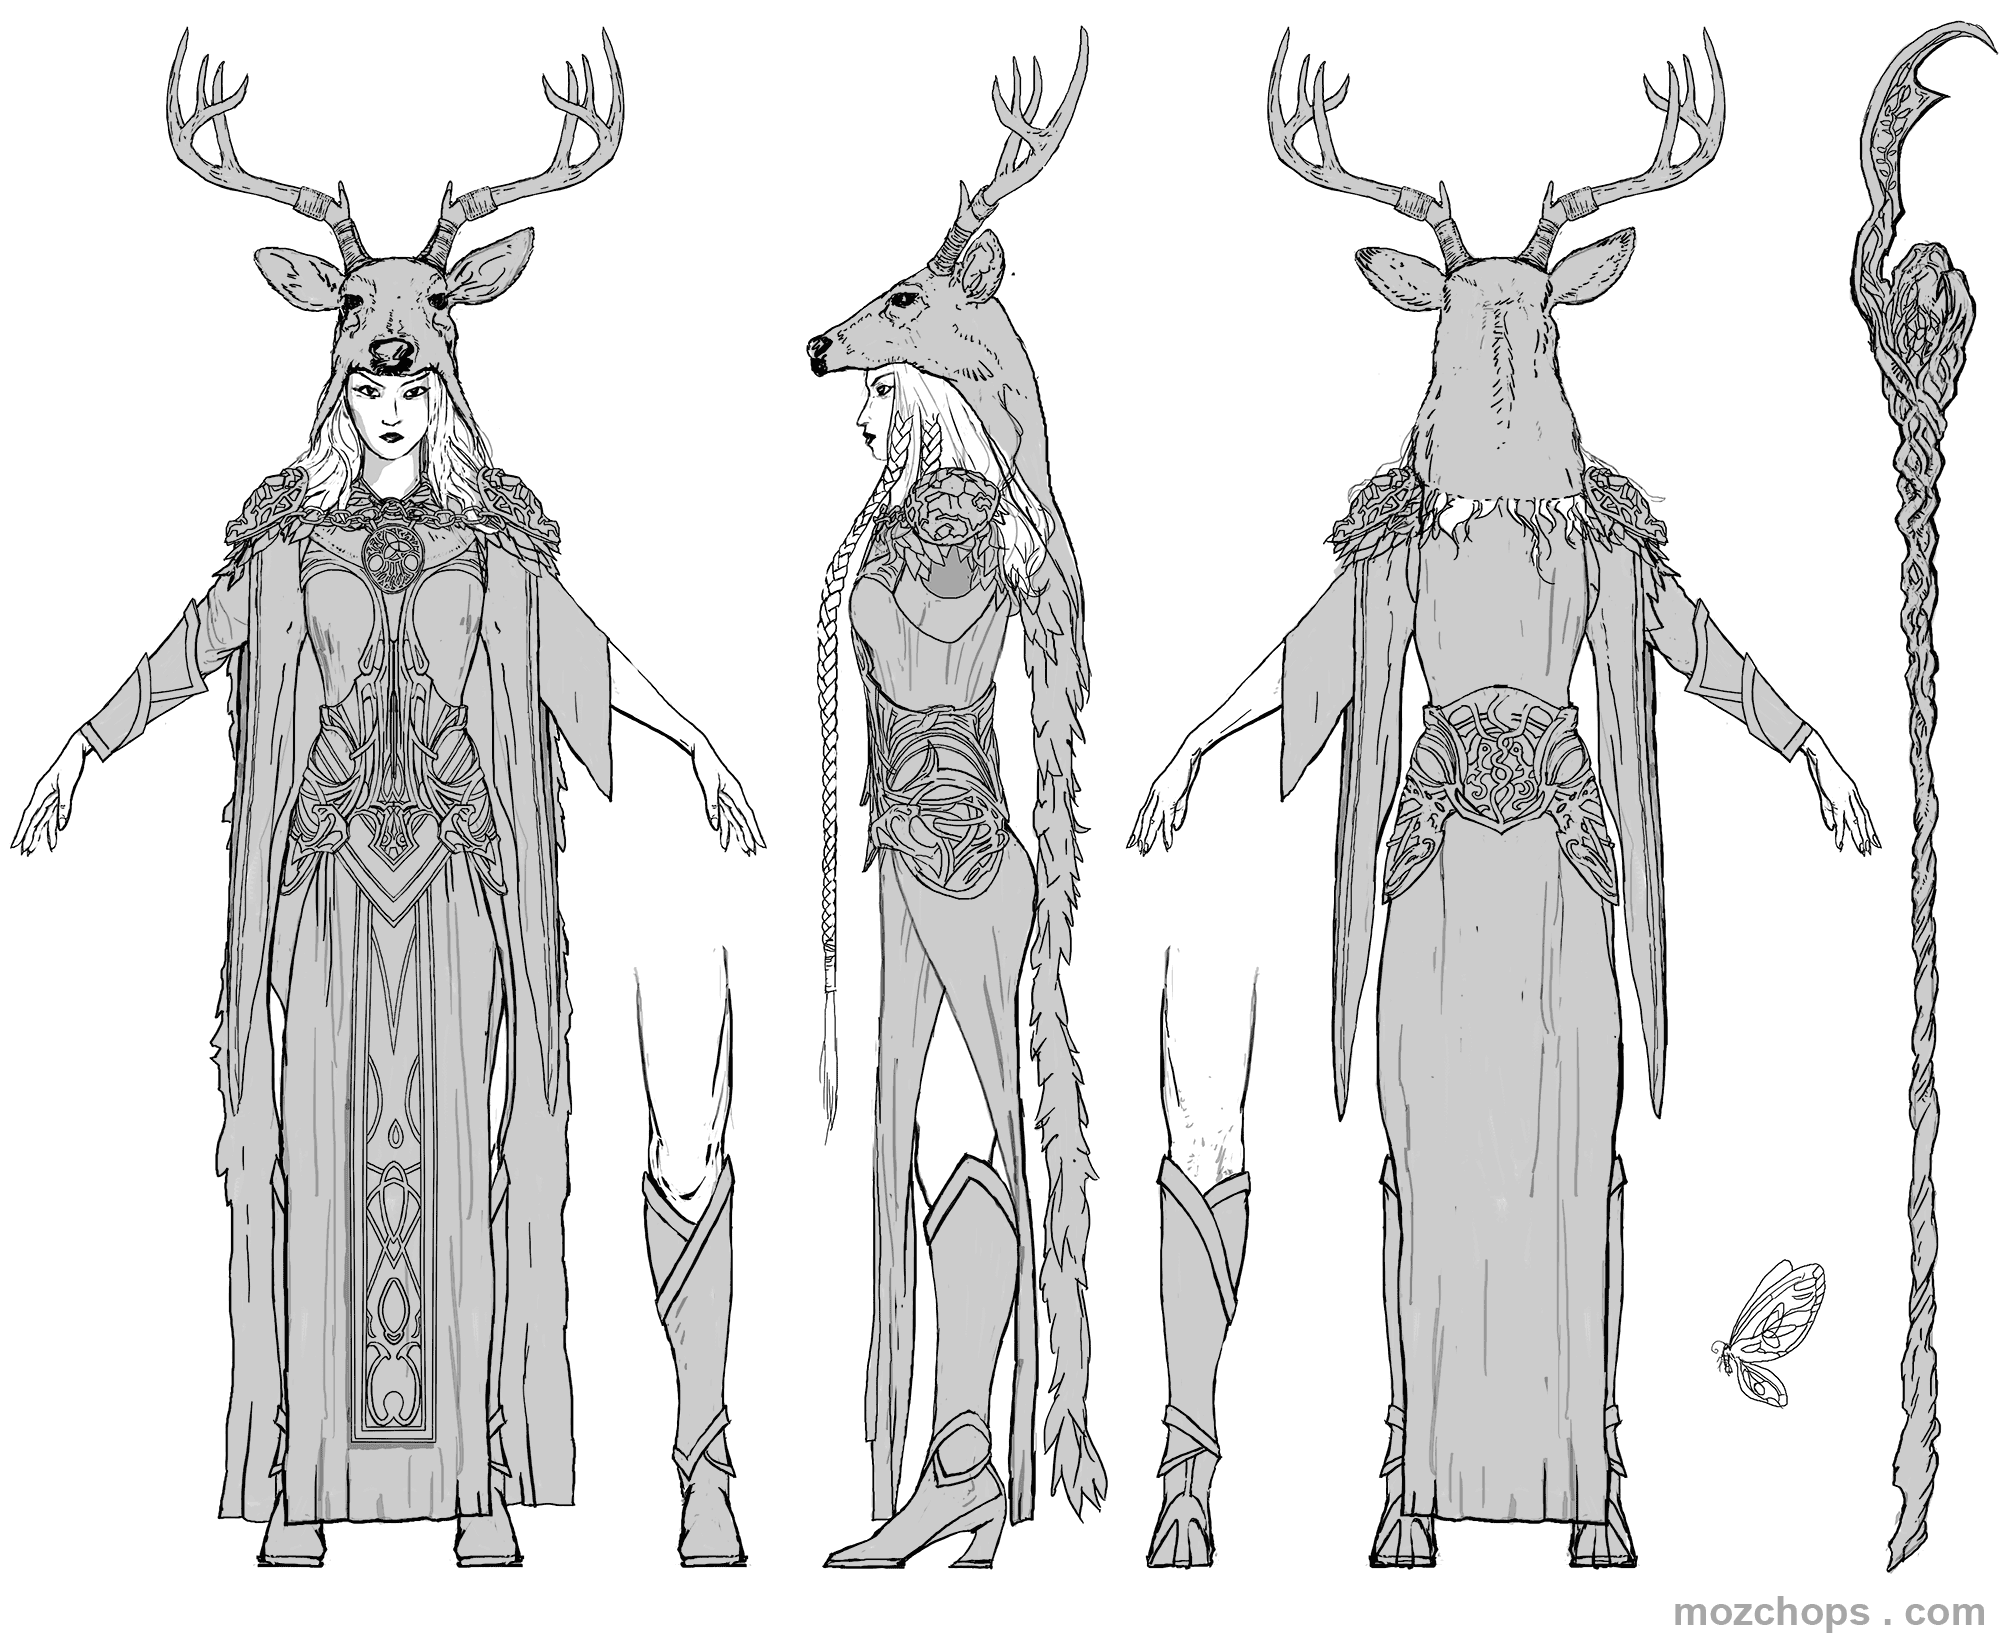 druid-elder-turnaround-06